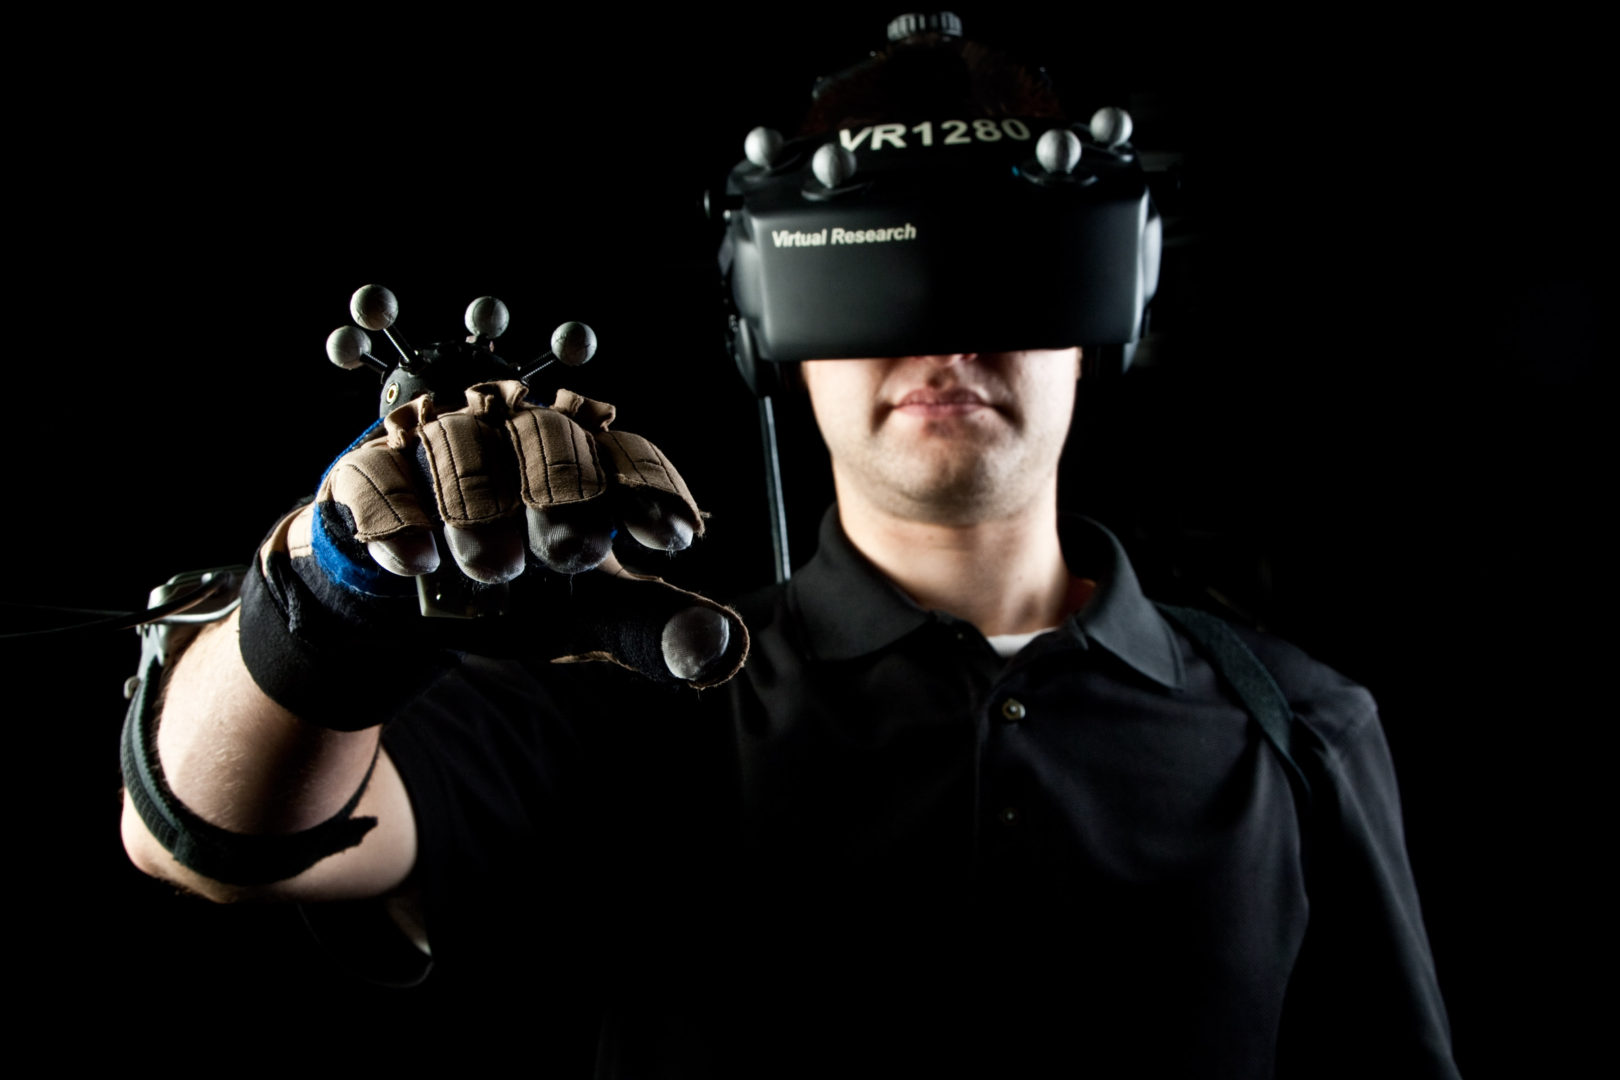 virtual reality, virtual realities, oculus rift kickstarter, virtual reality products